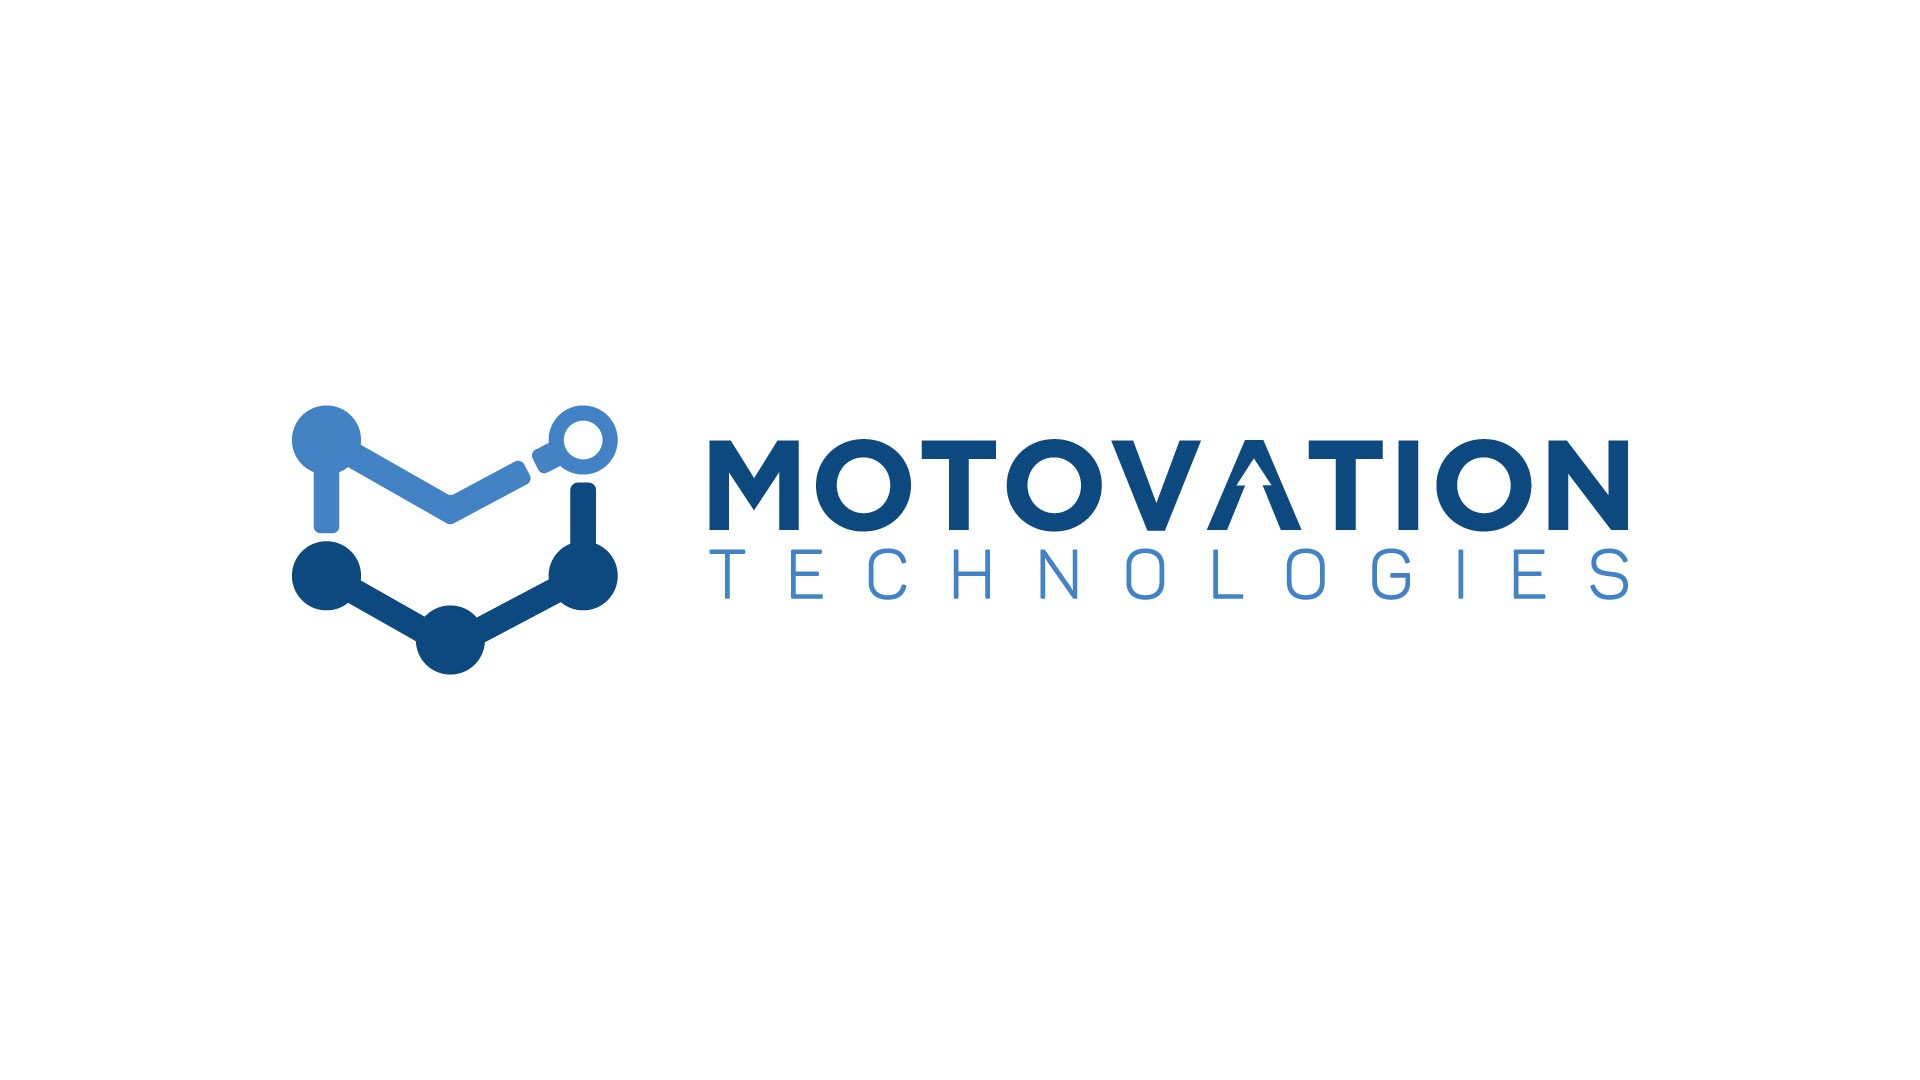 Motovation Technologies needs a logo that screams innovation